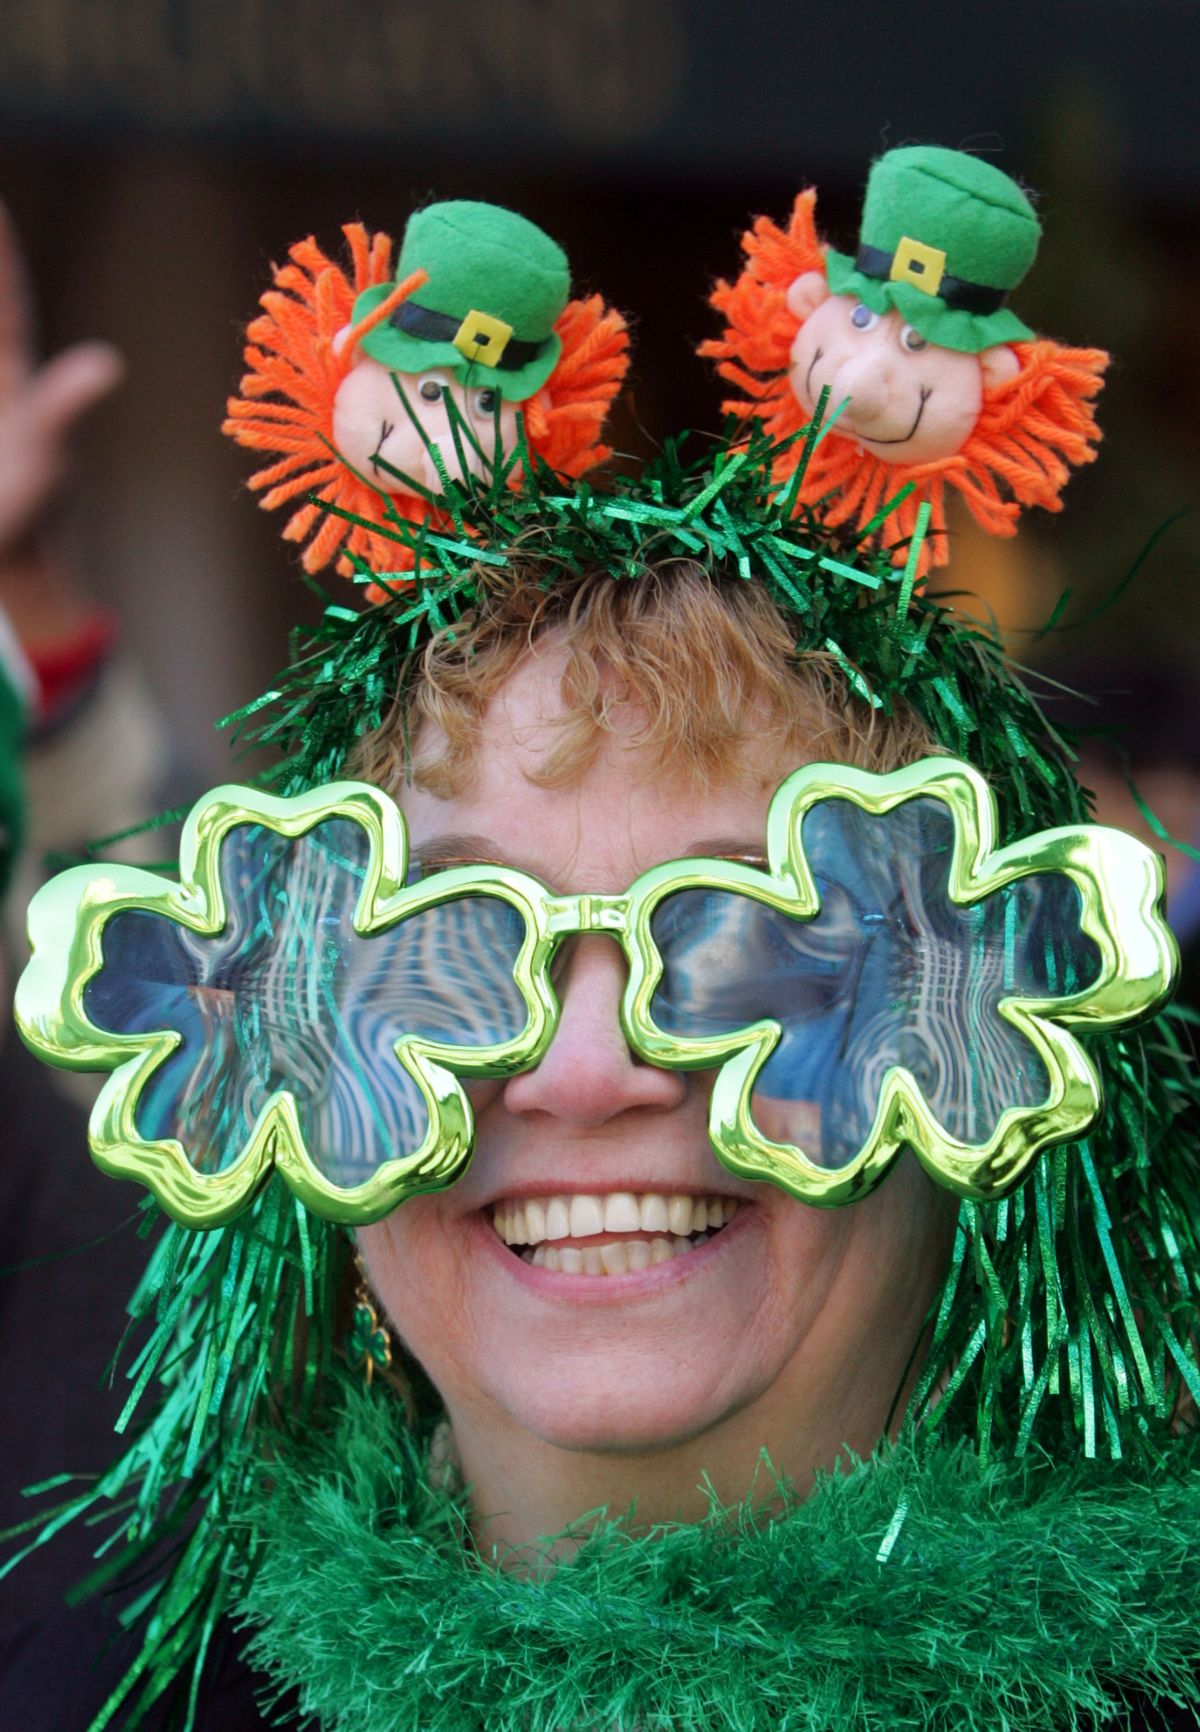 Geralyn Monahan-Jones, from Beacon, NY, greets participants of the annual St. Patrick's Day Parade on Fifth Avenue, Friday, March 17, 2006 in New York. This is the 245th year that St. Patrick's Day Parade has been held in New York City. (AP Photo/Dima Gavrysh) (AP)